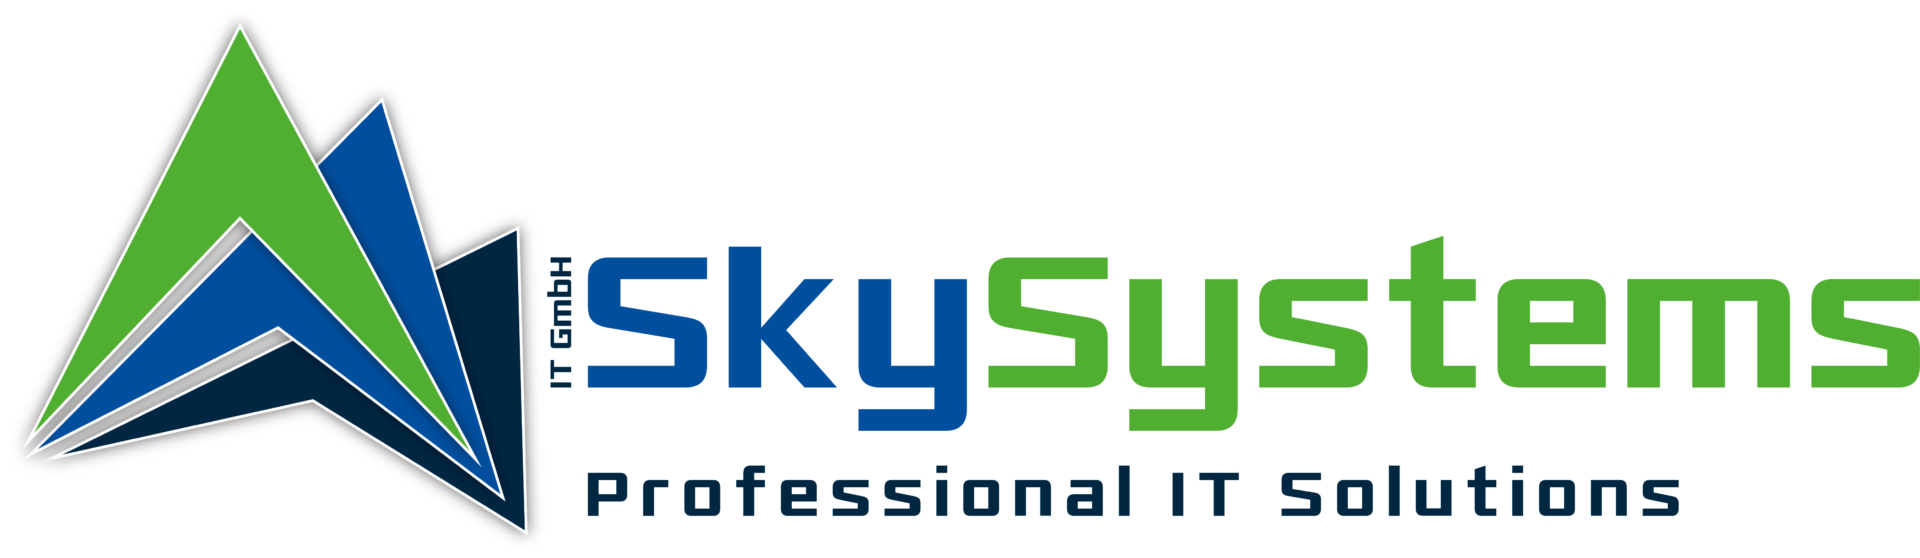 Skysystems IT GmbH